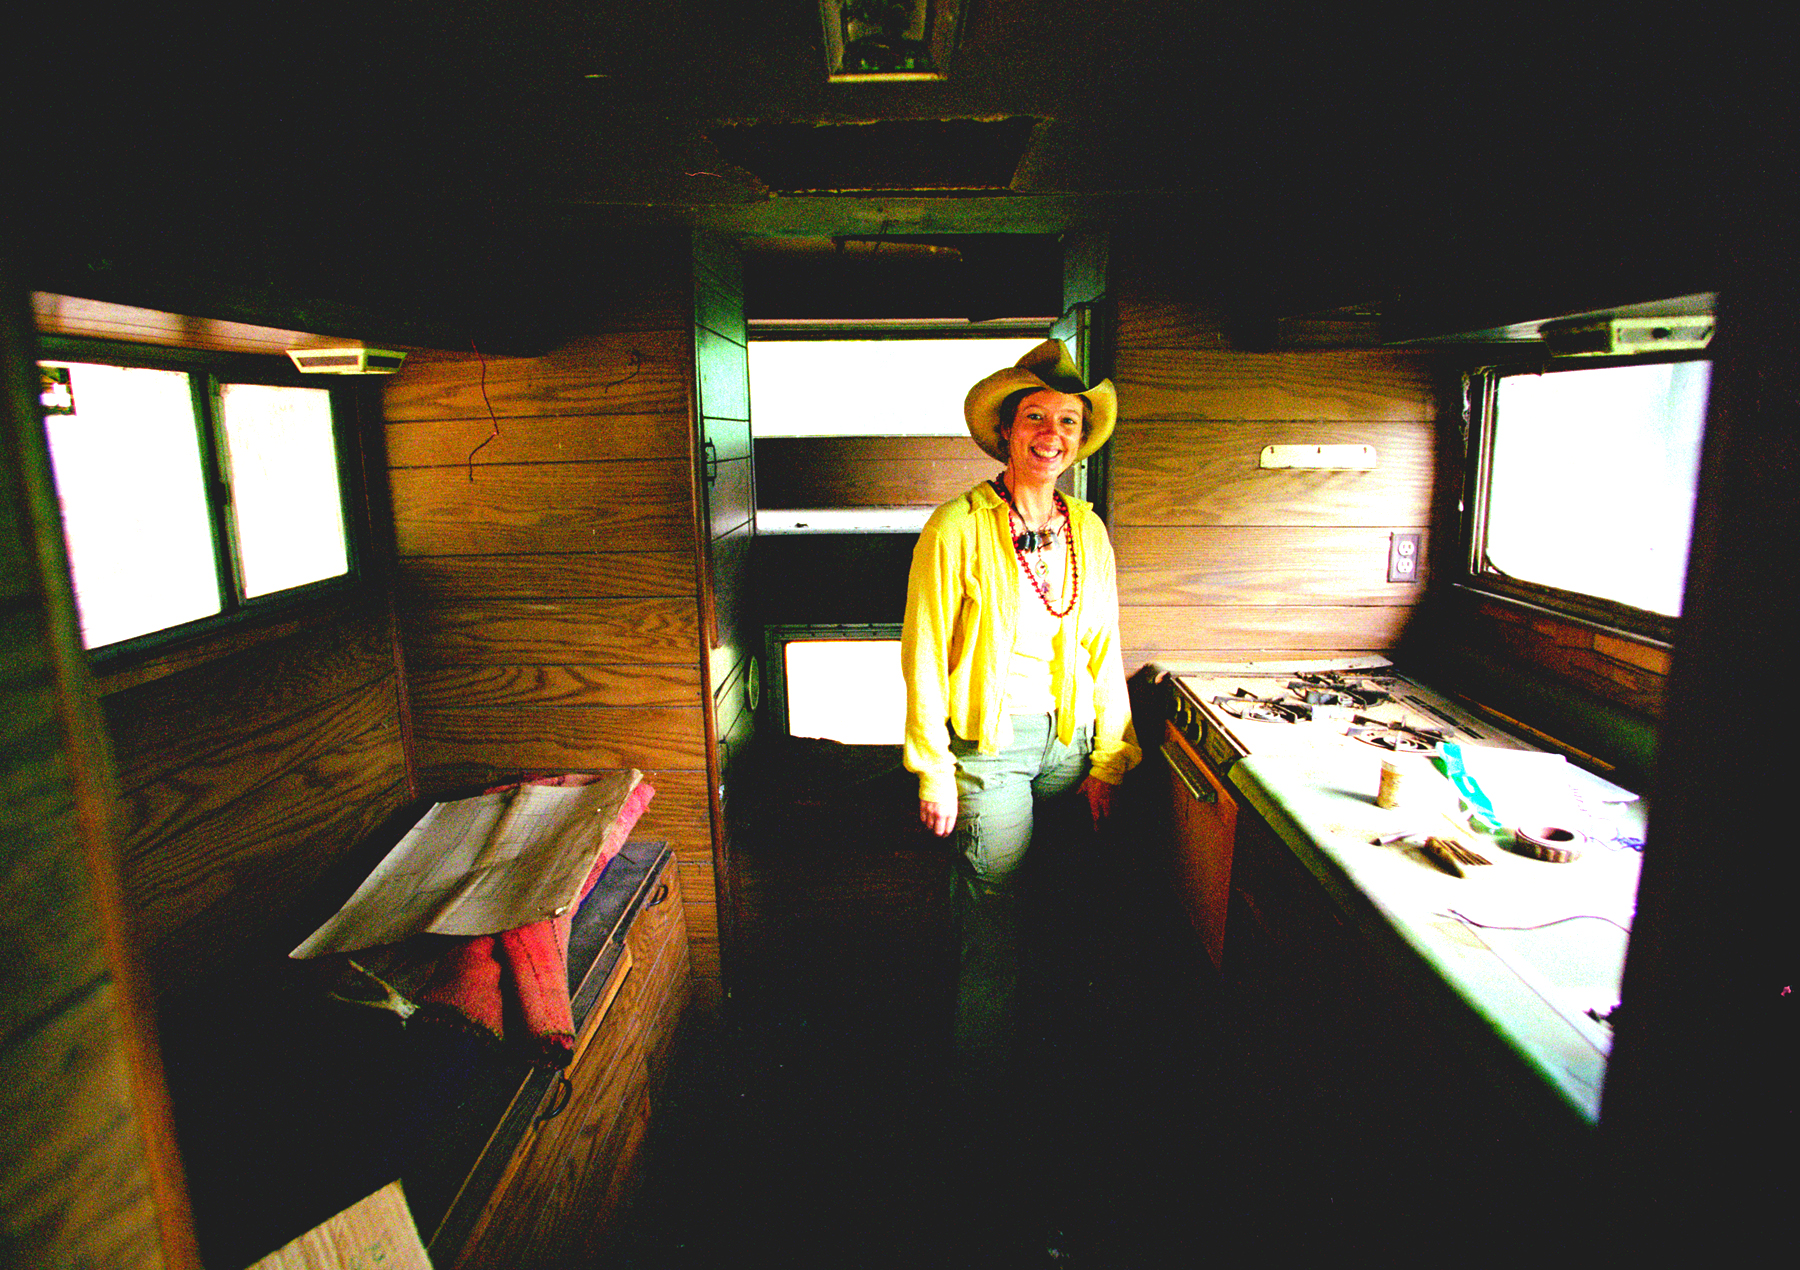 Inside old camper